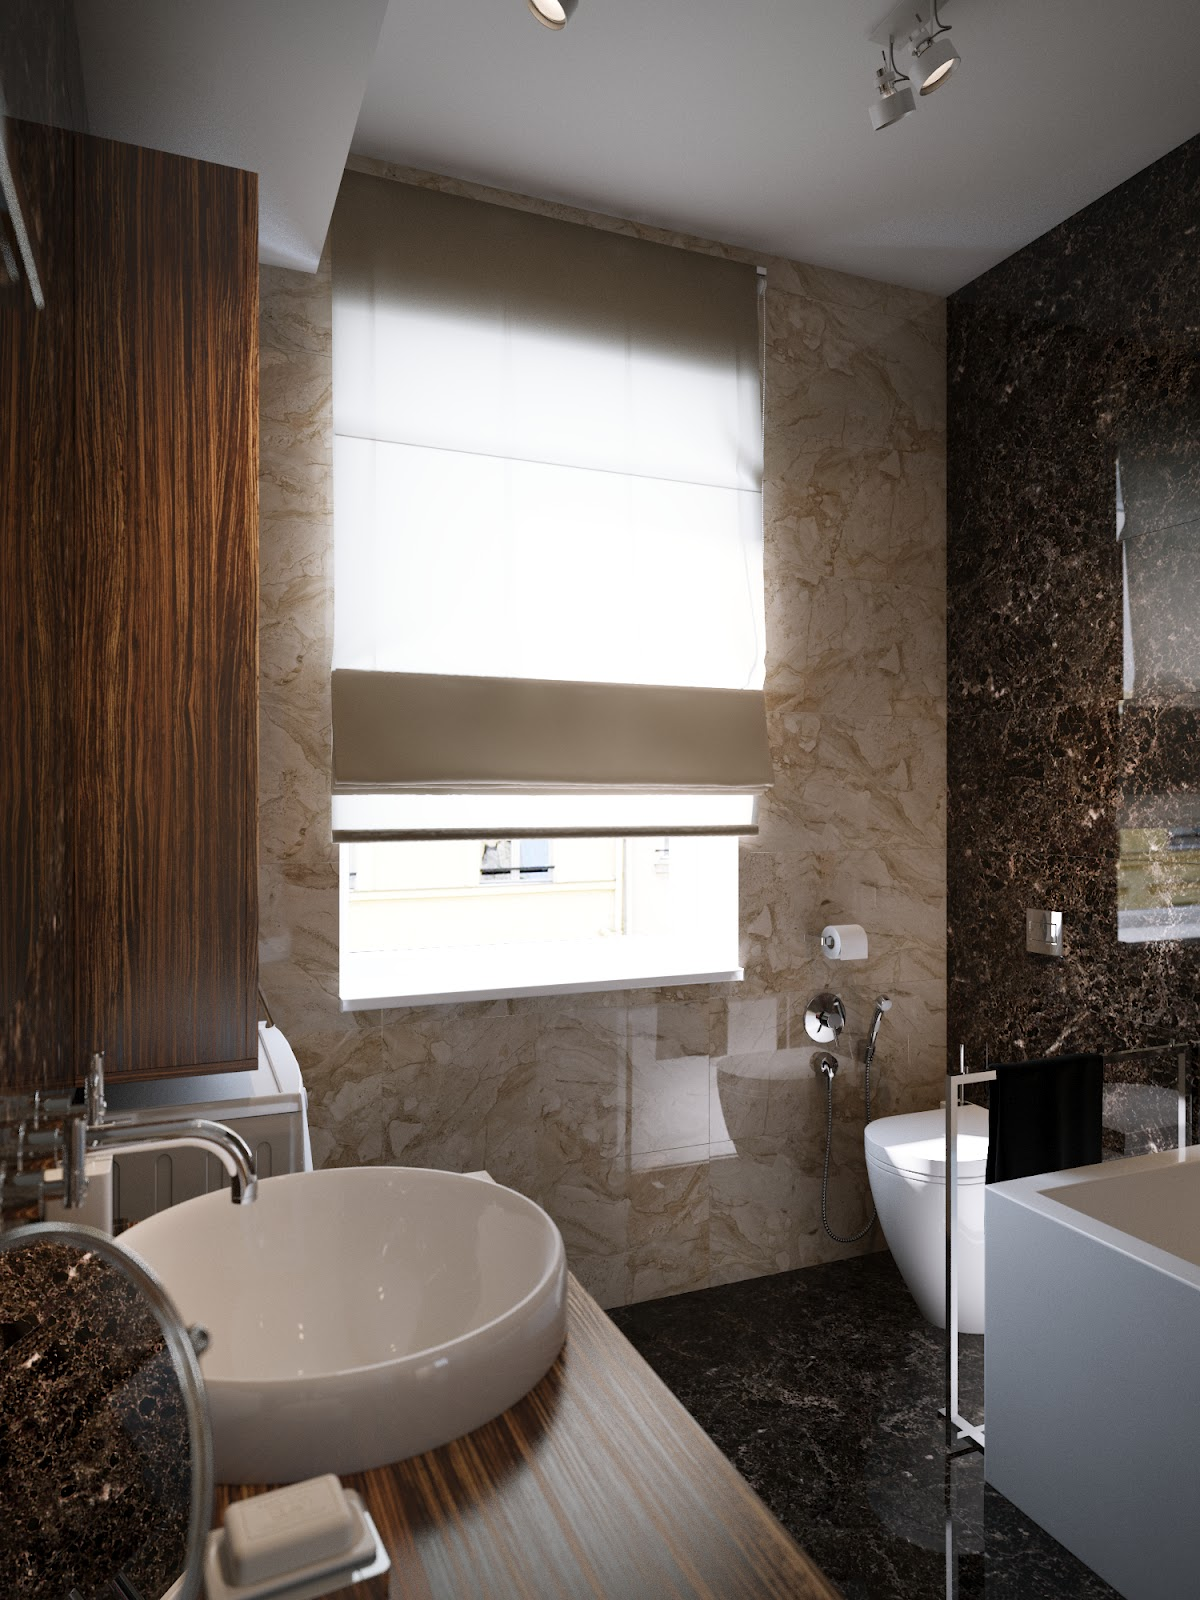 Modern bathroom design scheme interior design ideas Modern design of bathroom